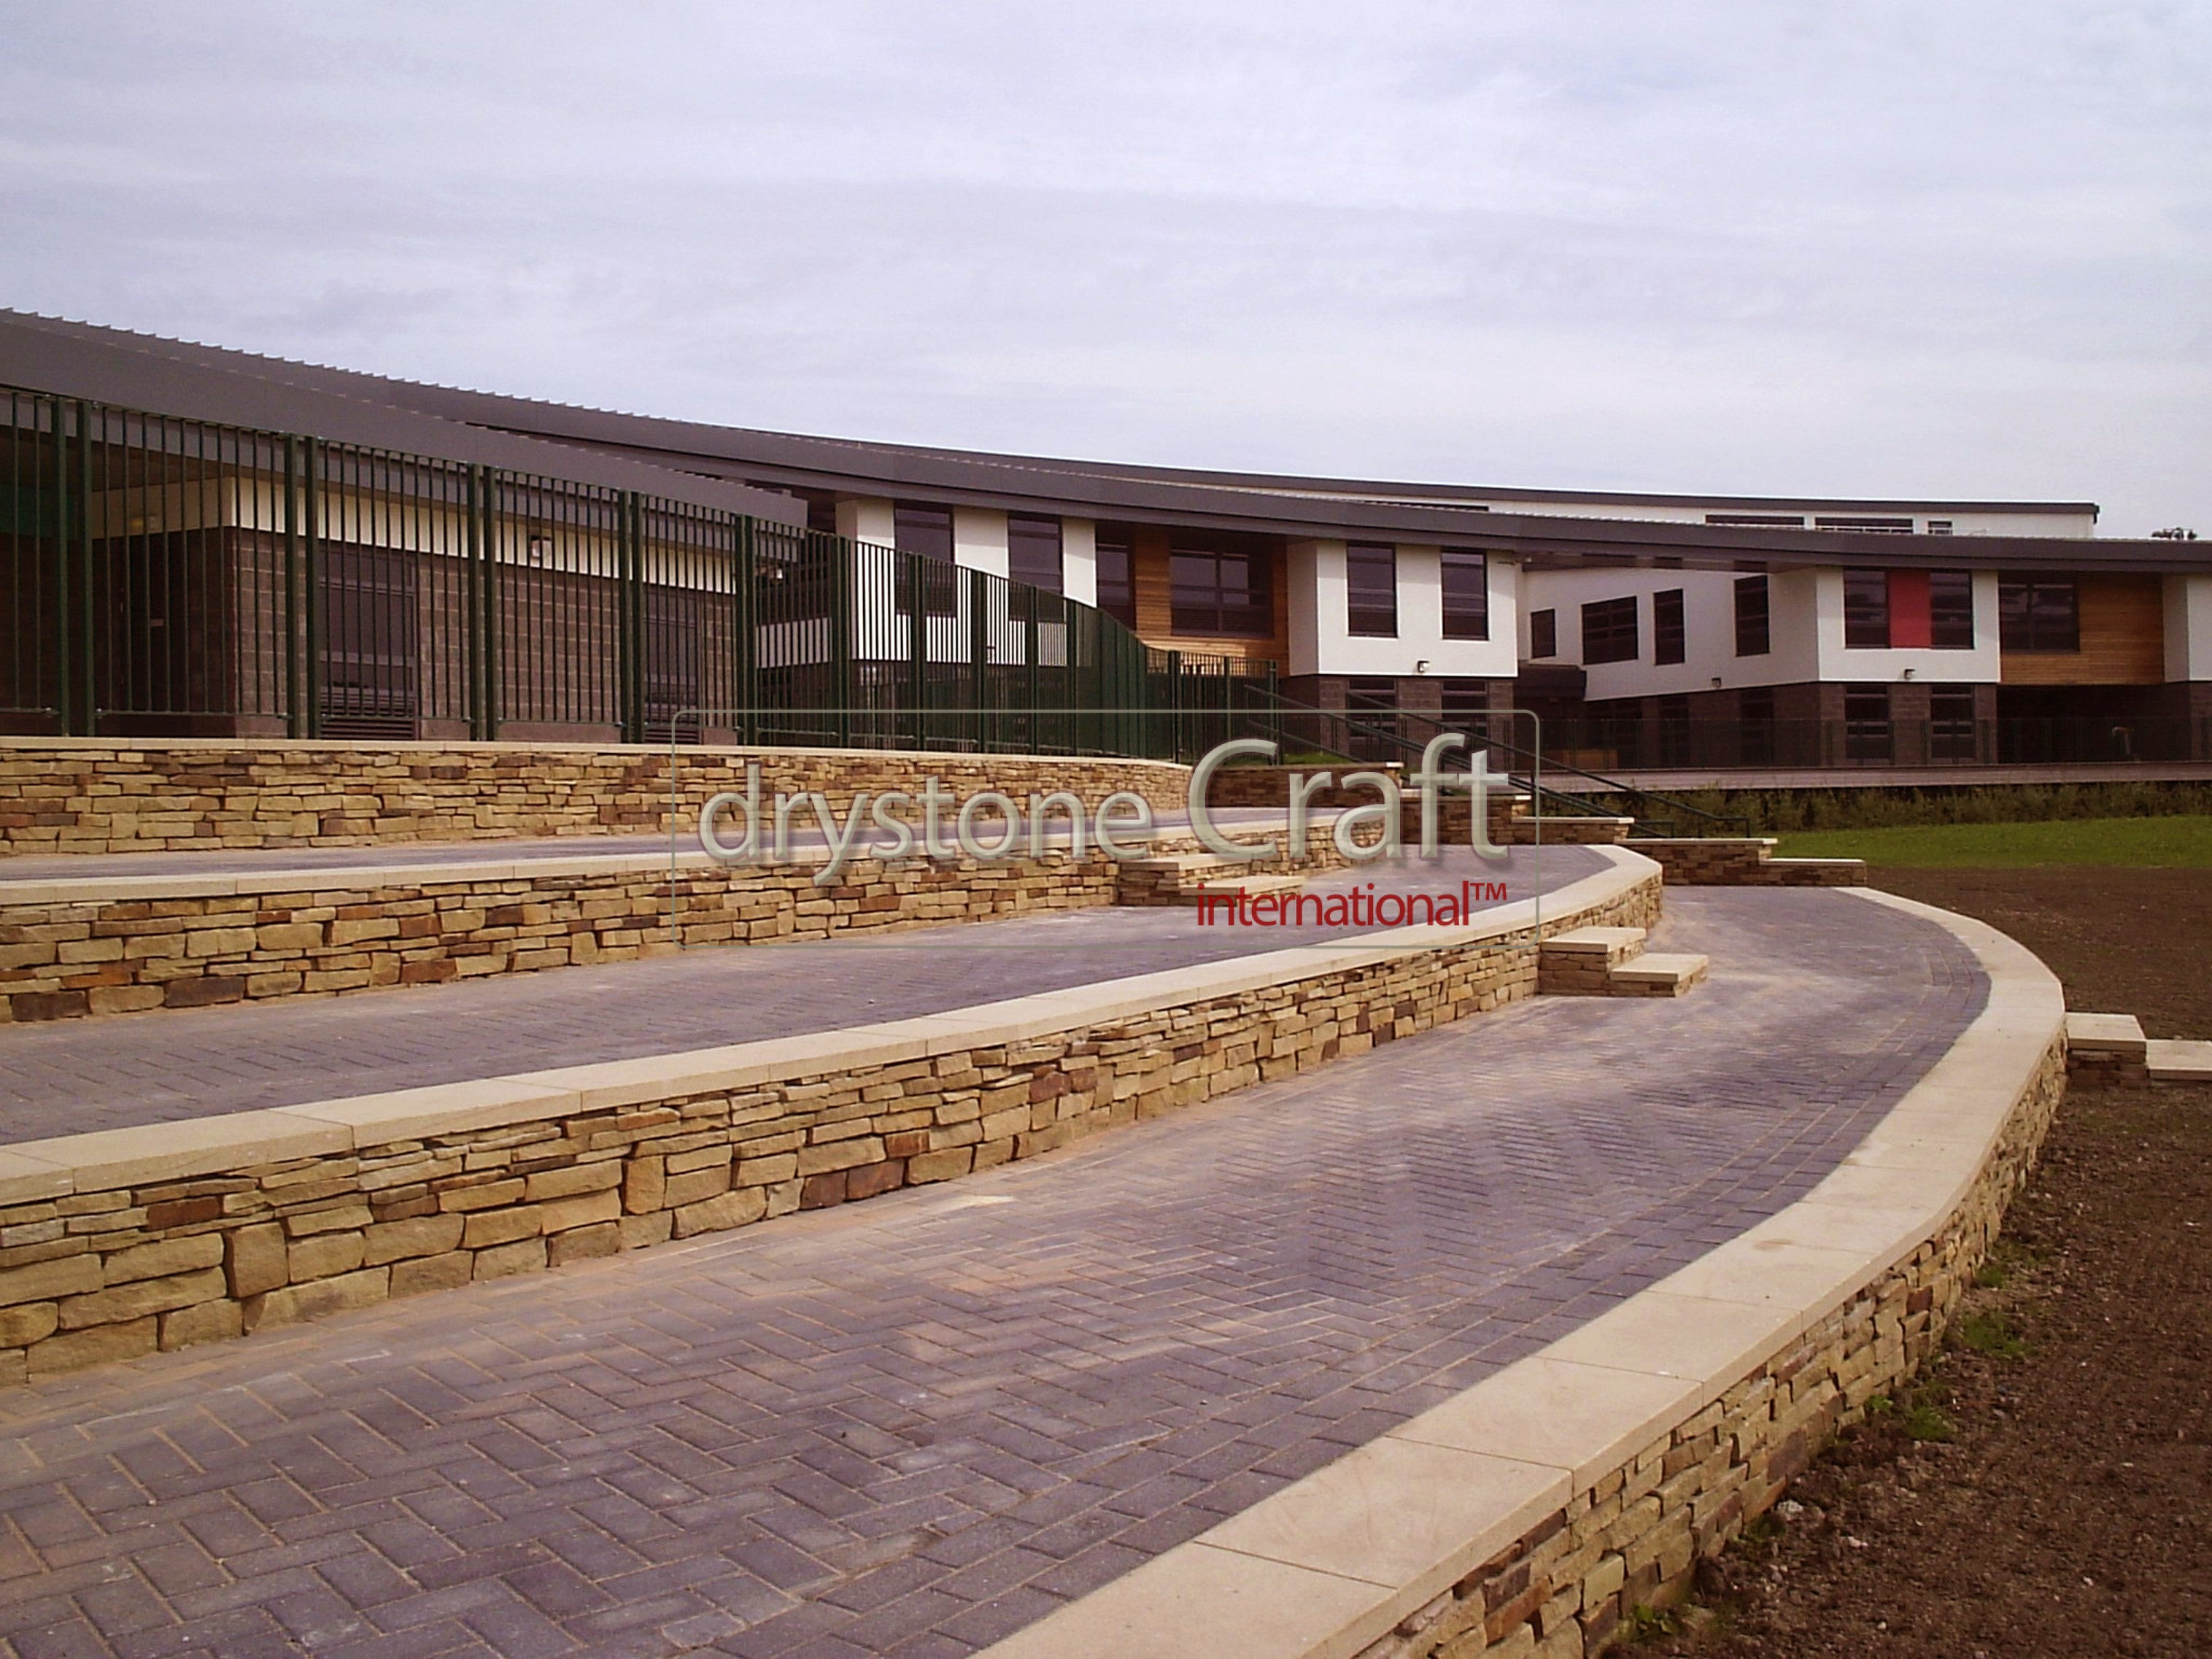 Stone clad retaining walls with stone flag tops unity college burnley